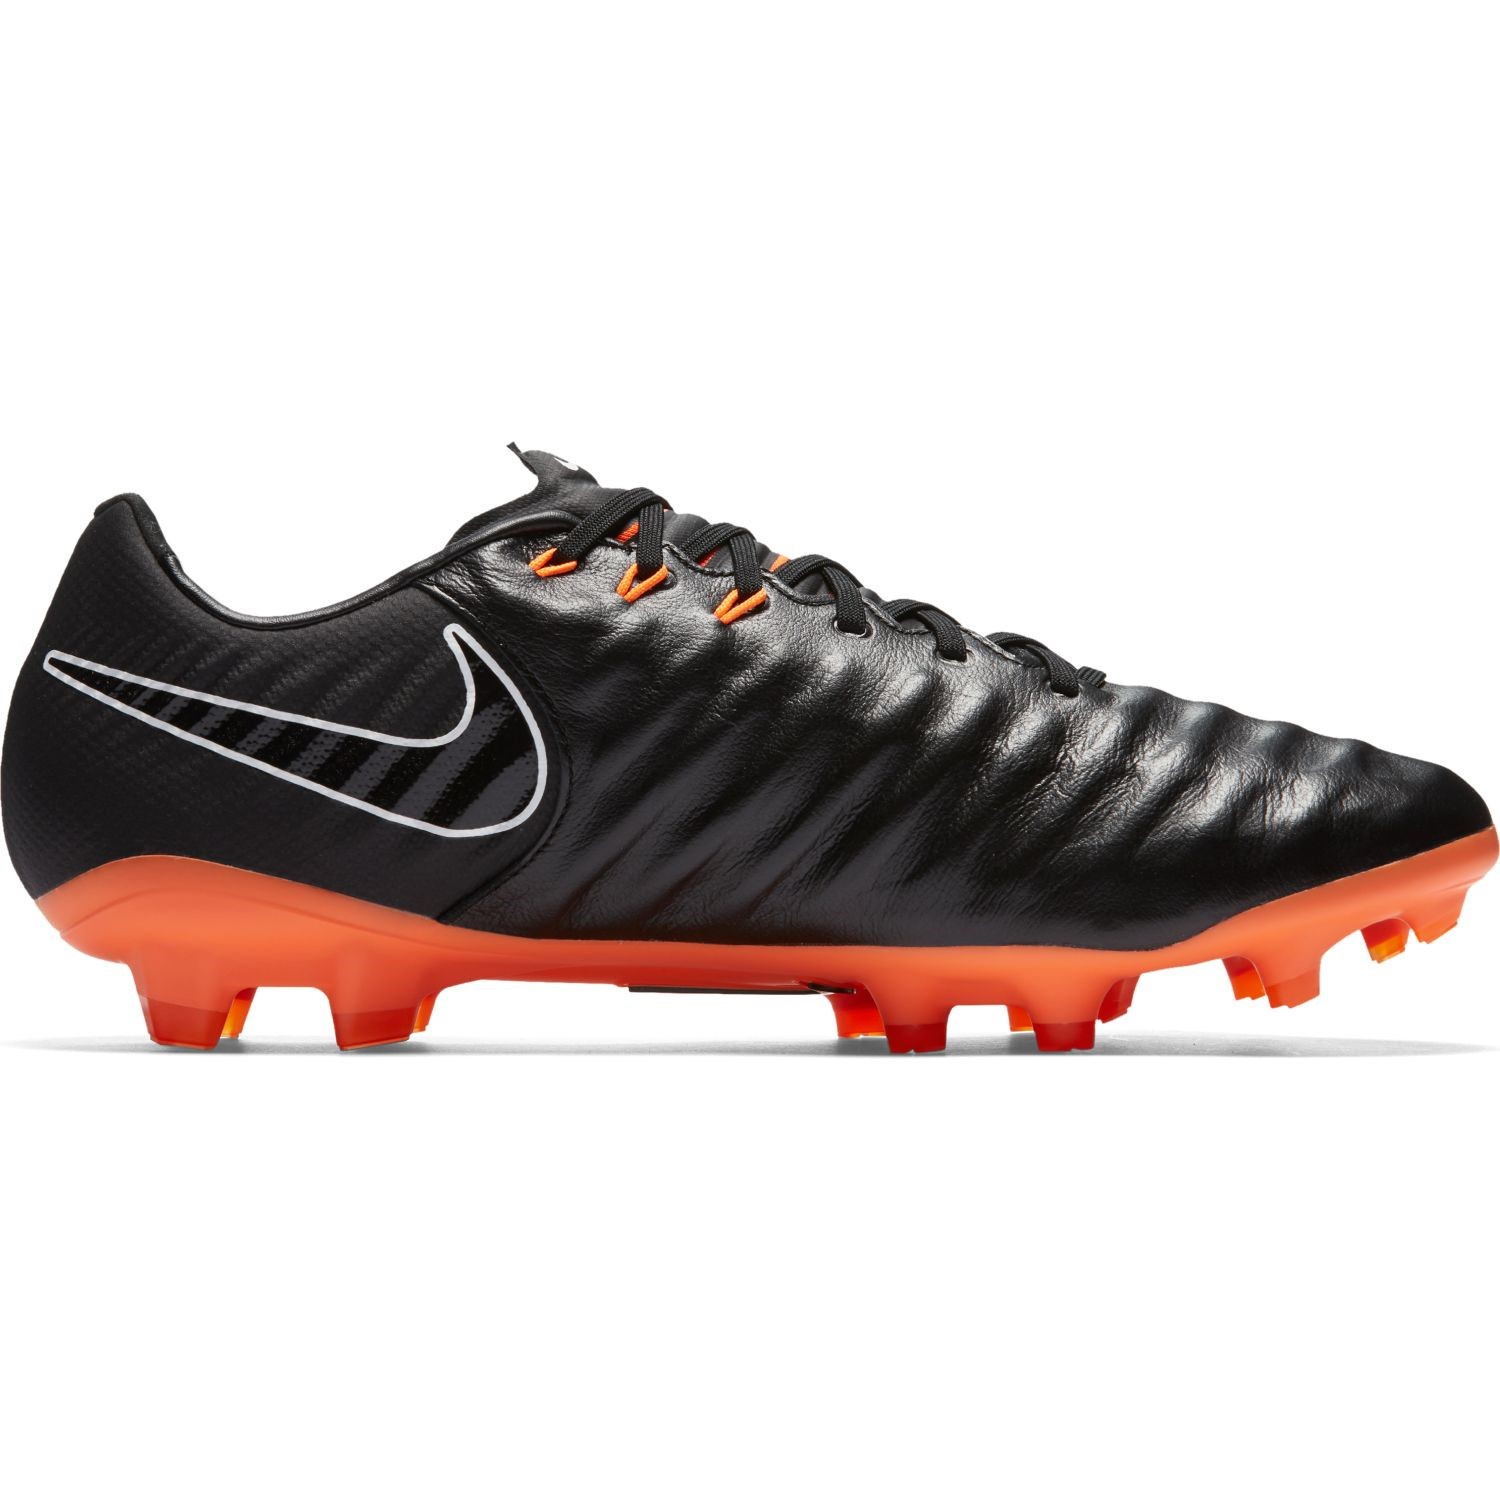 premium selection adfb3 a32e0 Nike Tiempo Legend VII Pro FG - Mens Football Boots